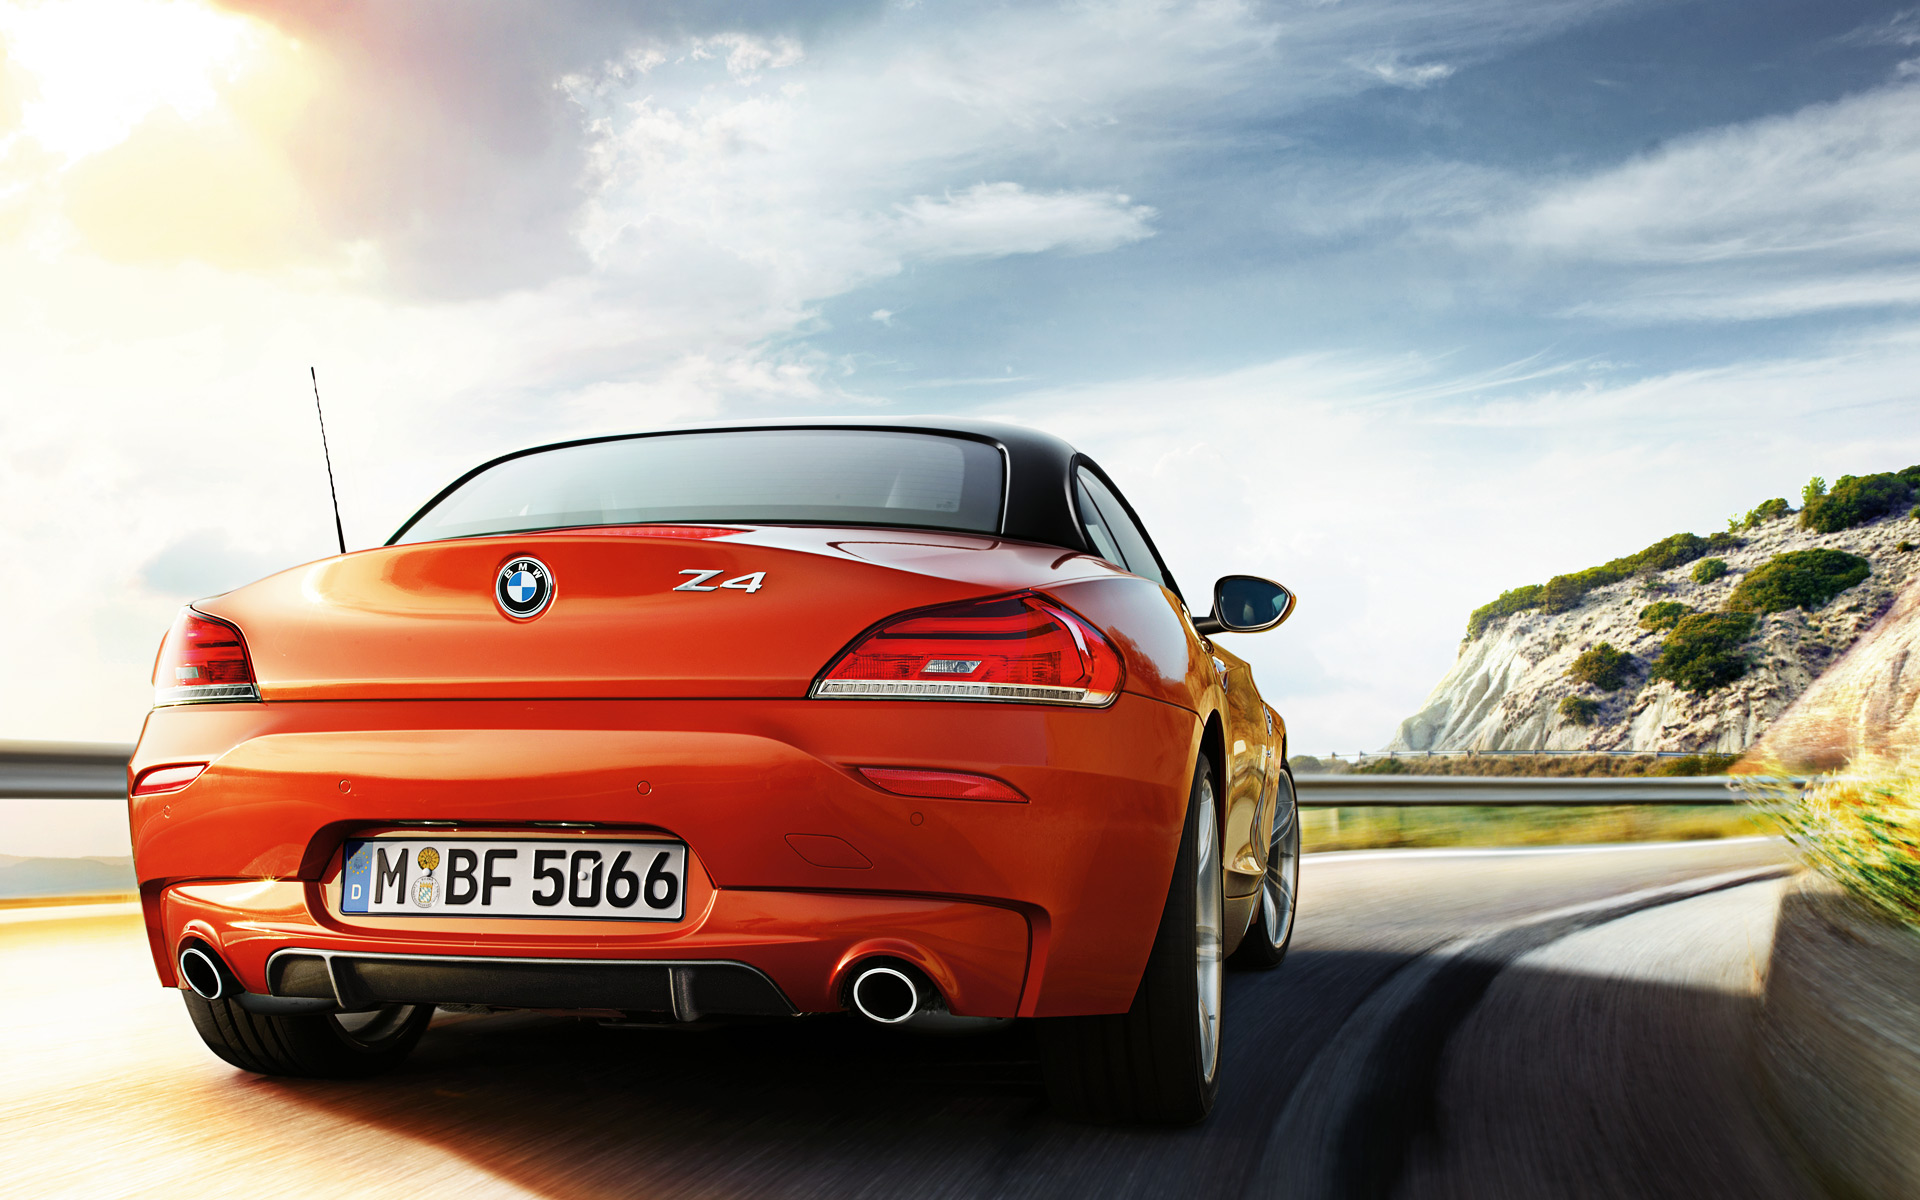 Wallpapers 2013 Bmw Z4 Facelift In Valencia Orange